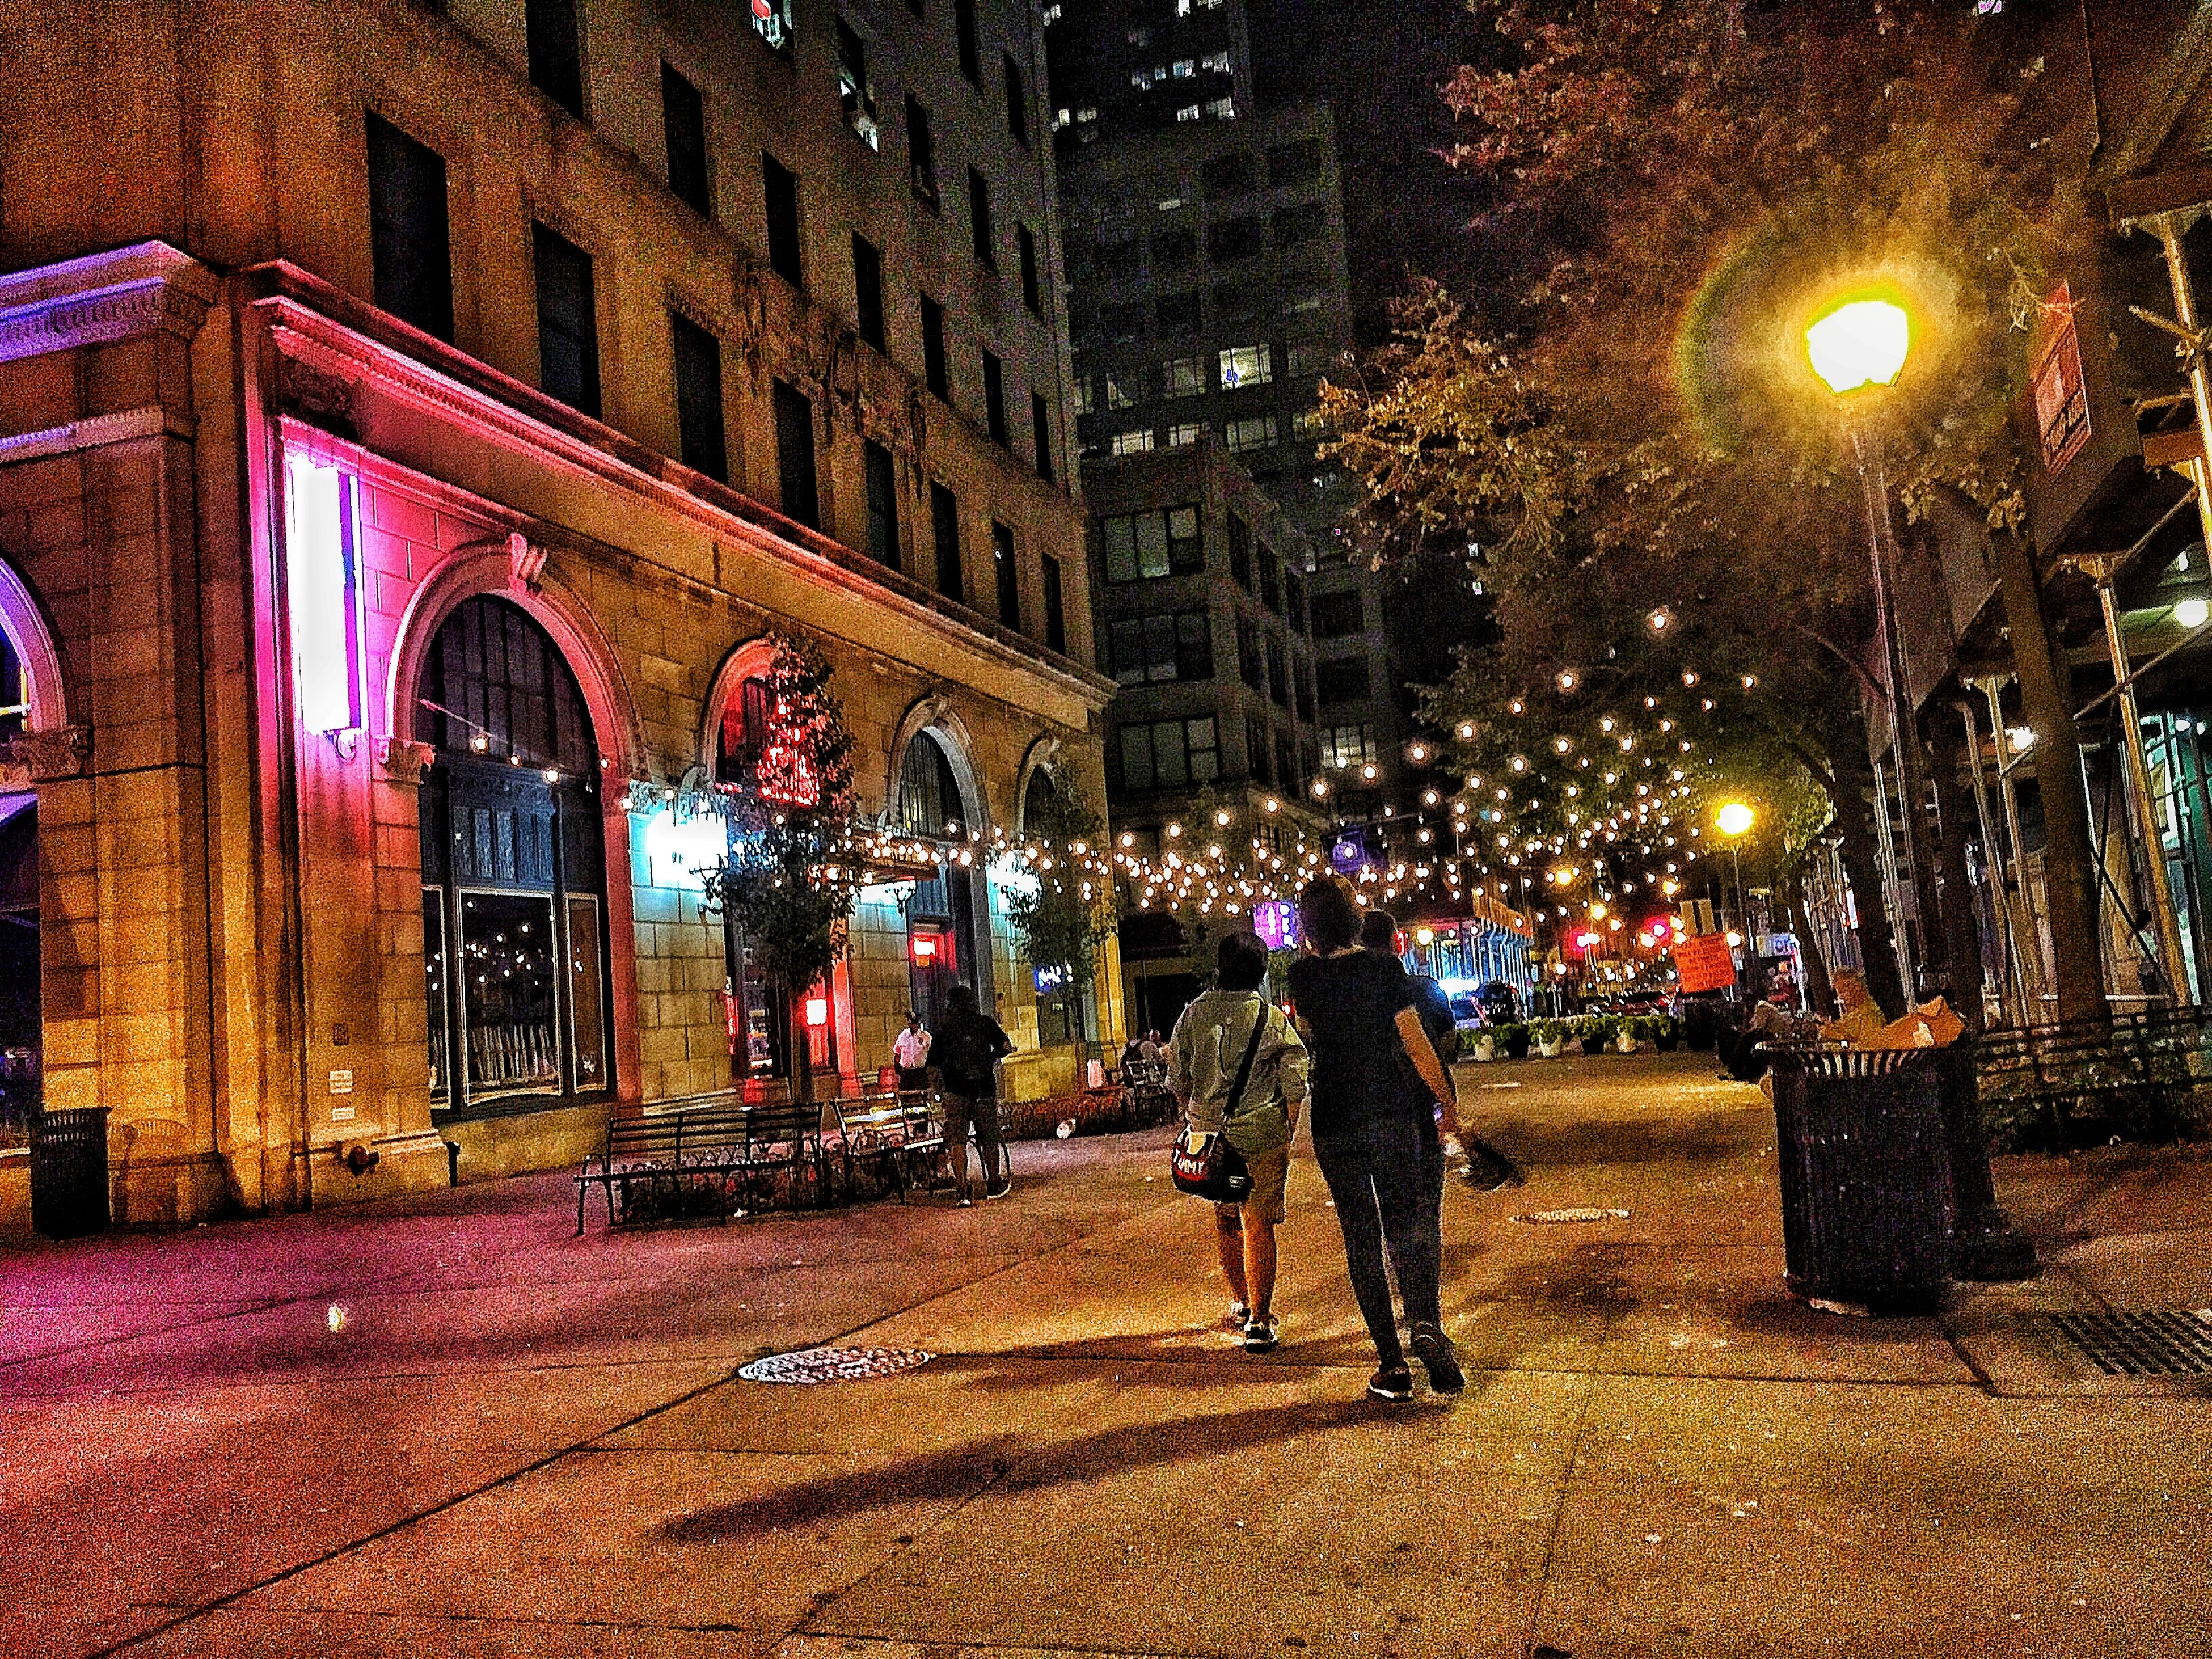 lifestyles, leisure activity, illuminated, person, men, night, architecture, large group of people, building exterior, full length, built structure, rear view, celebration, walking, togetherness, lighting equipment, standing, casual clothing, tree